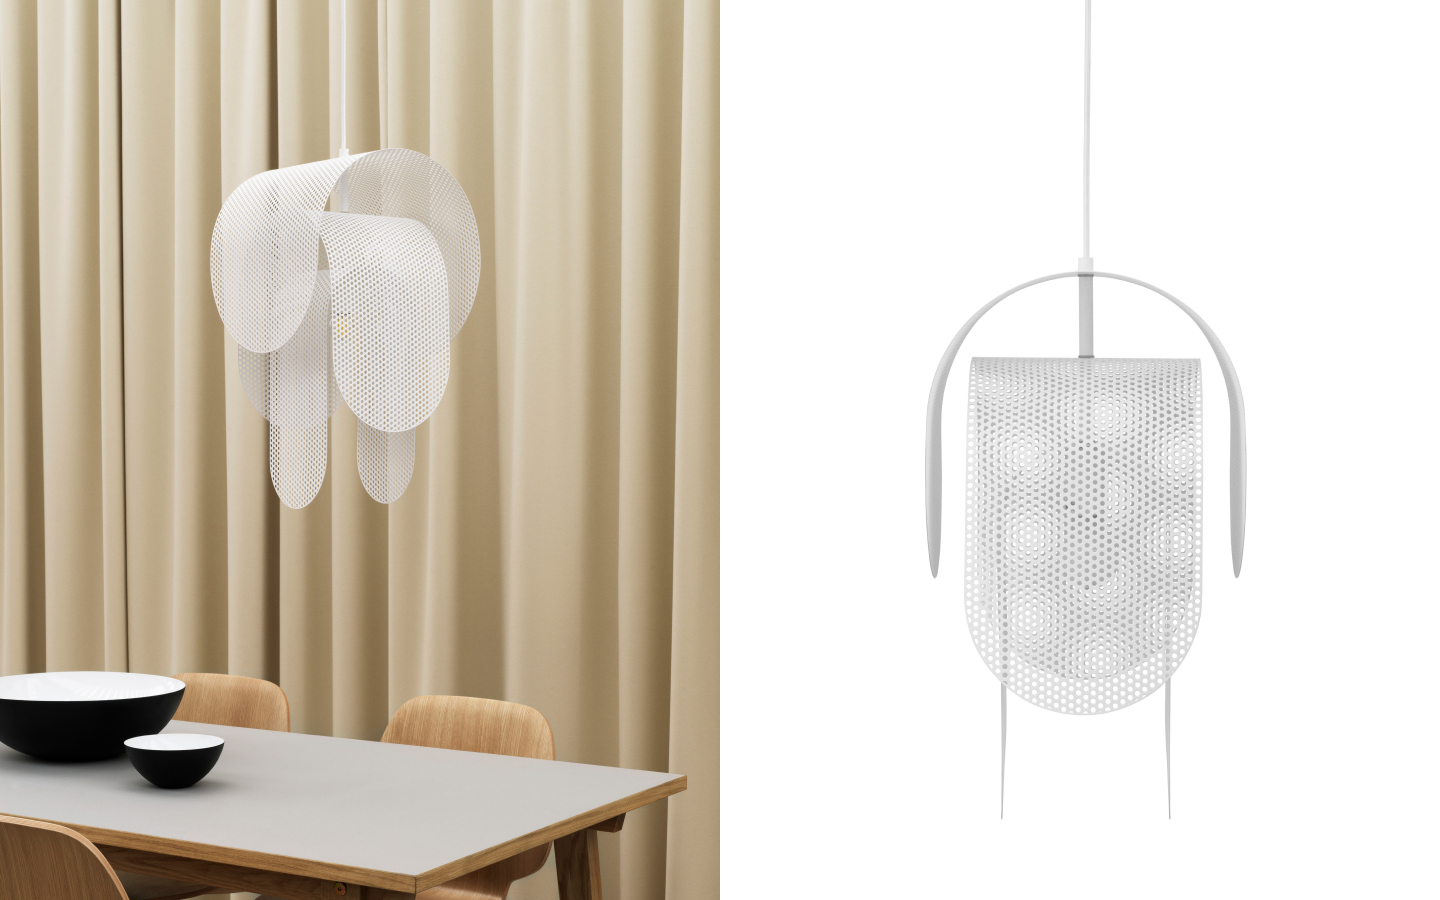 White pendant with curved perforated metal panels